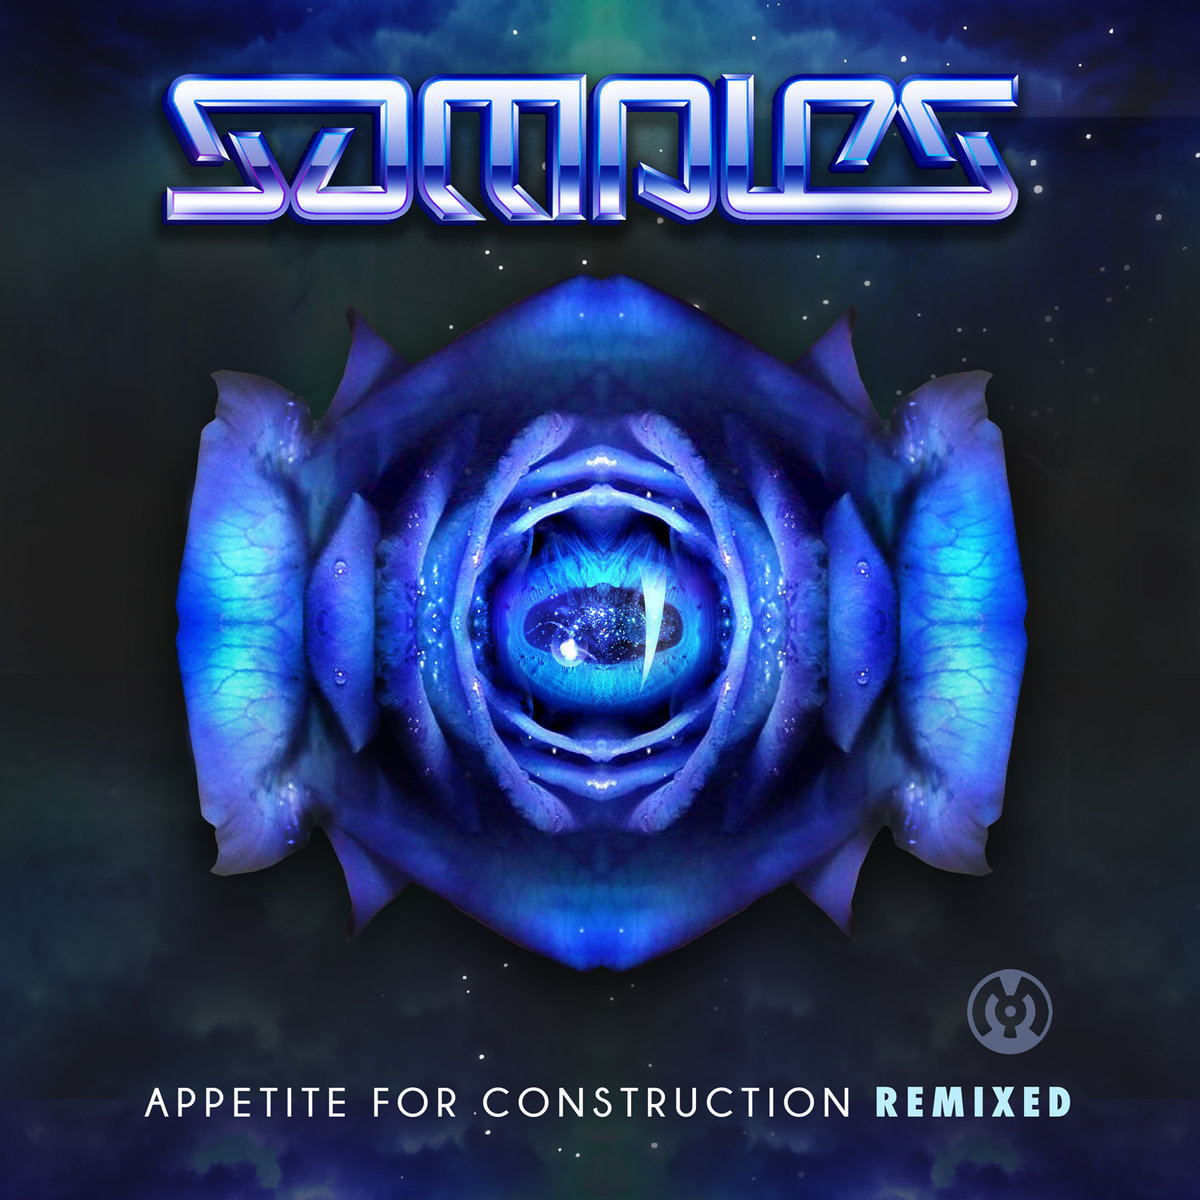 Samples - The Storm (Knight Riderz Remix) @ 'Appetite For Construction Remixed' album (electronic, dubstep)